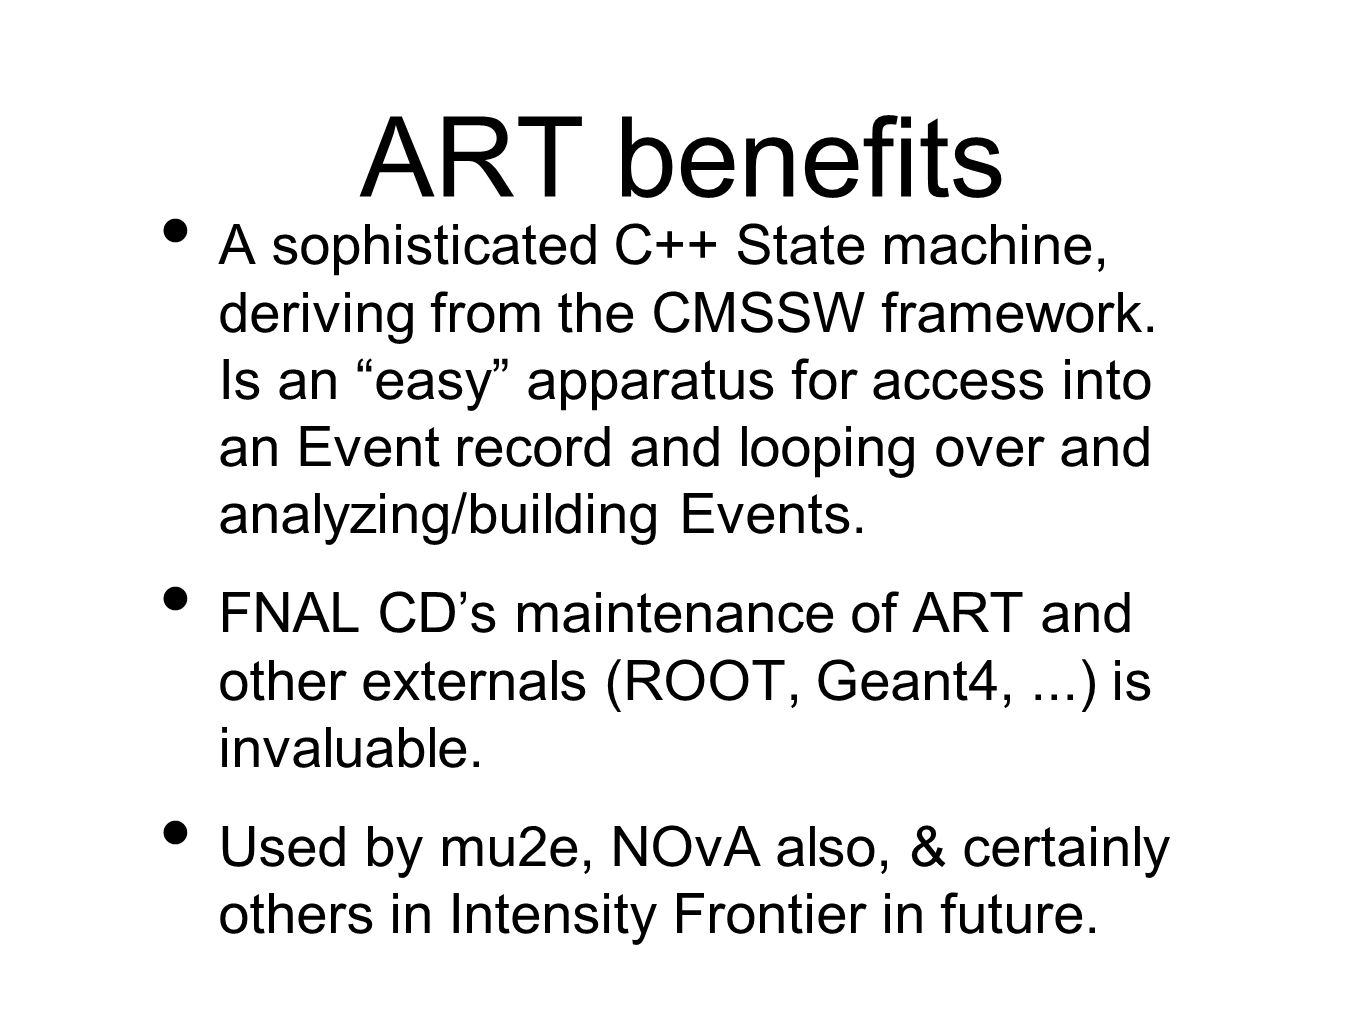 ART benefits A sophisticated C++ State machine, deriving from the CMSSW framework.